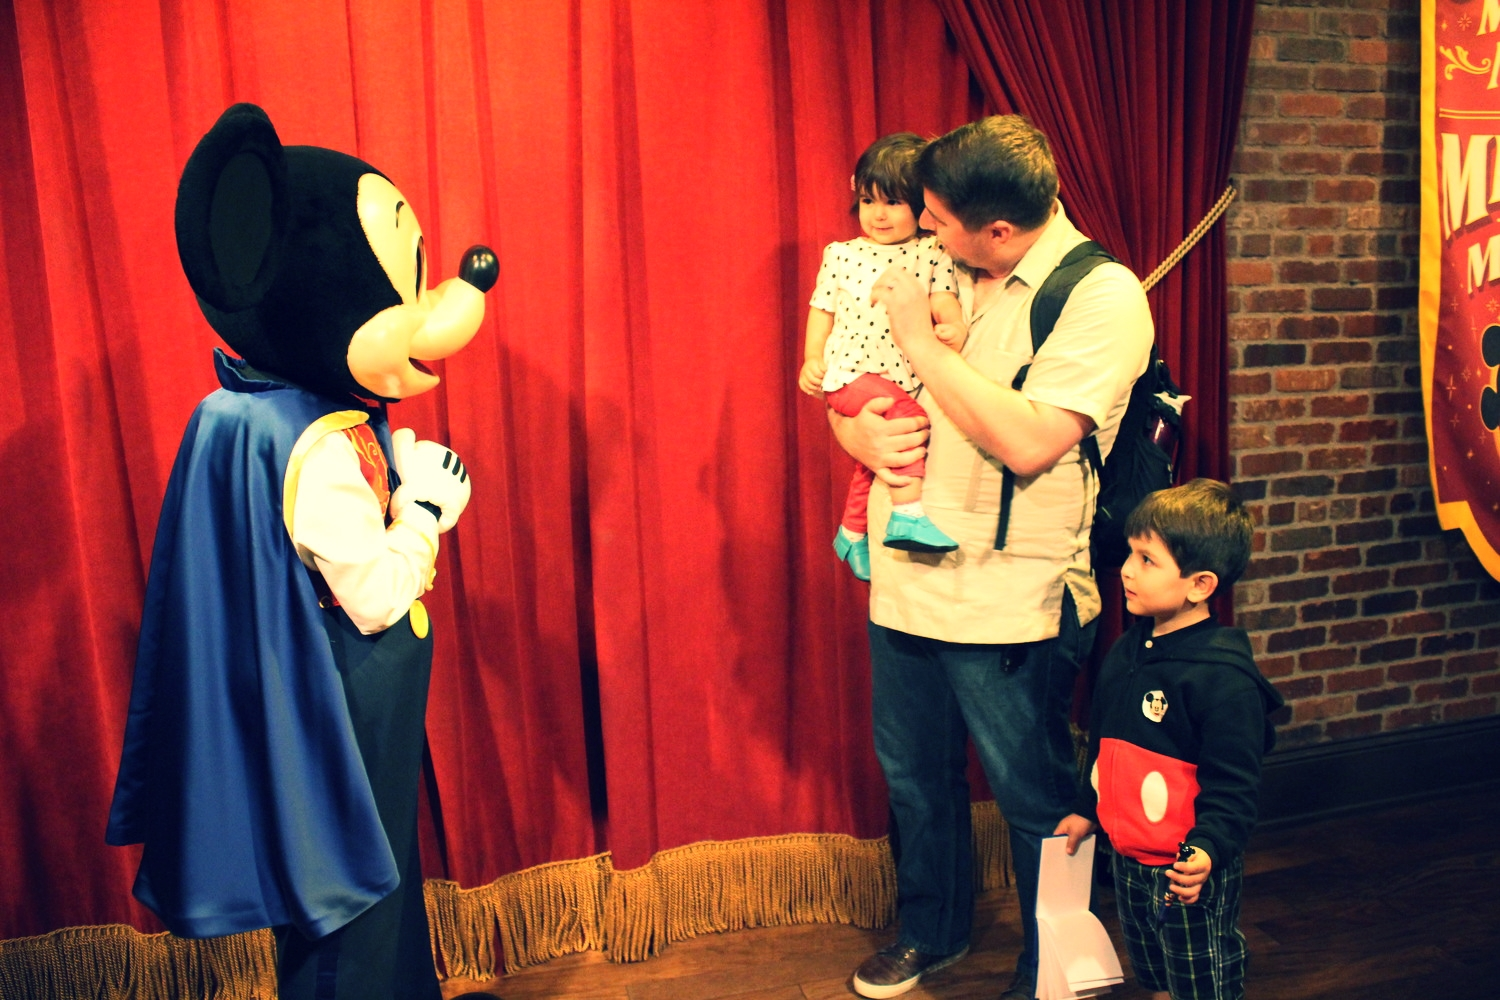 Finally met Mickey Mouse!